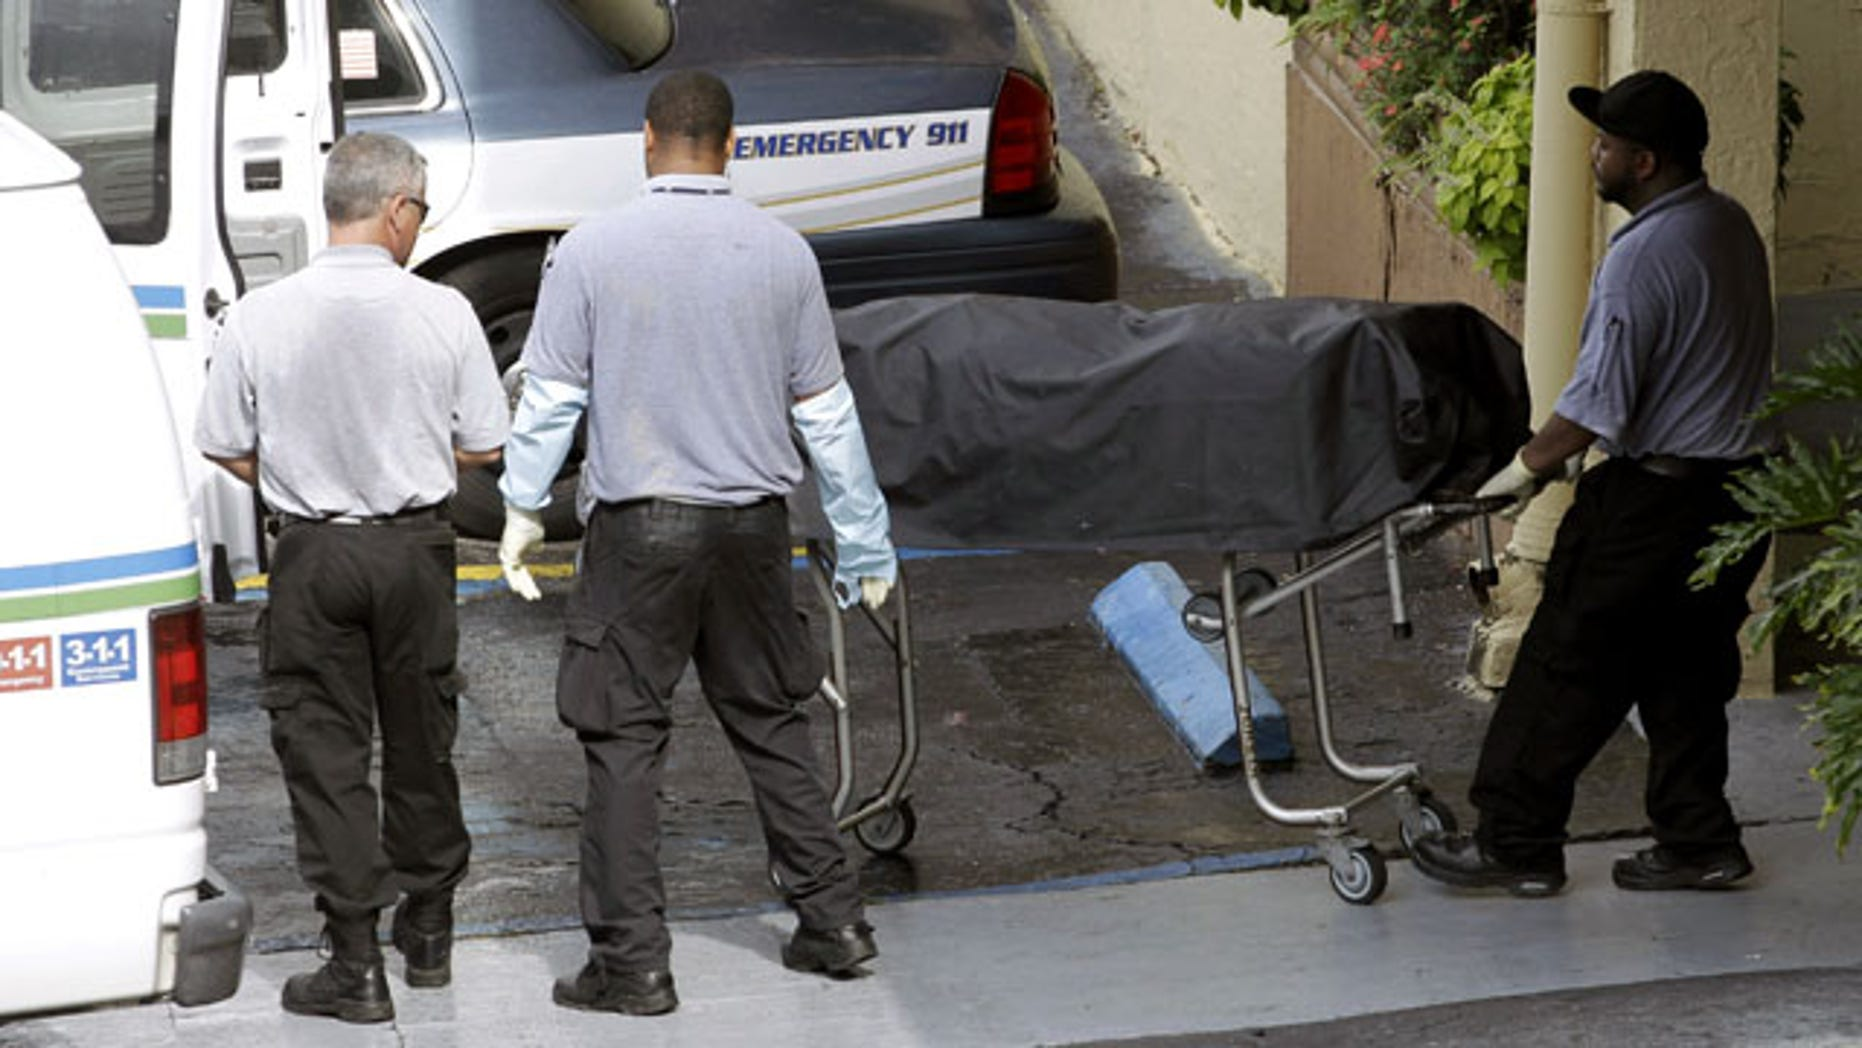 July 27, 2013: Miami-Dade morgue workers carry out a body out at the scene of a fatal shooting in Hialeah, Fla. (AP Photo)